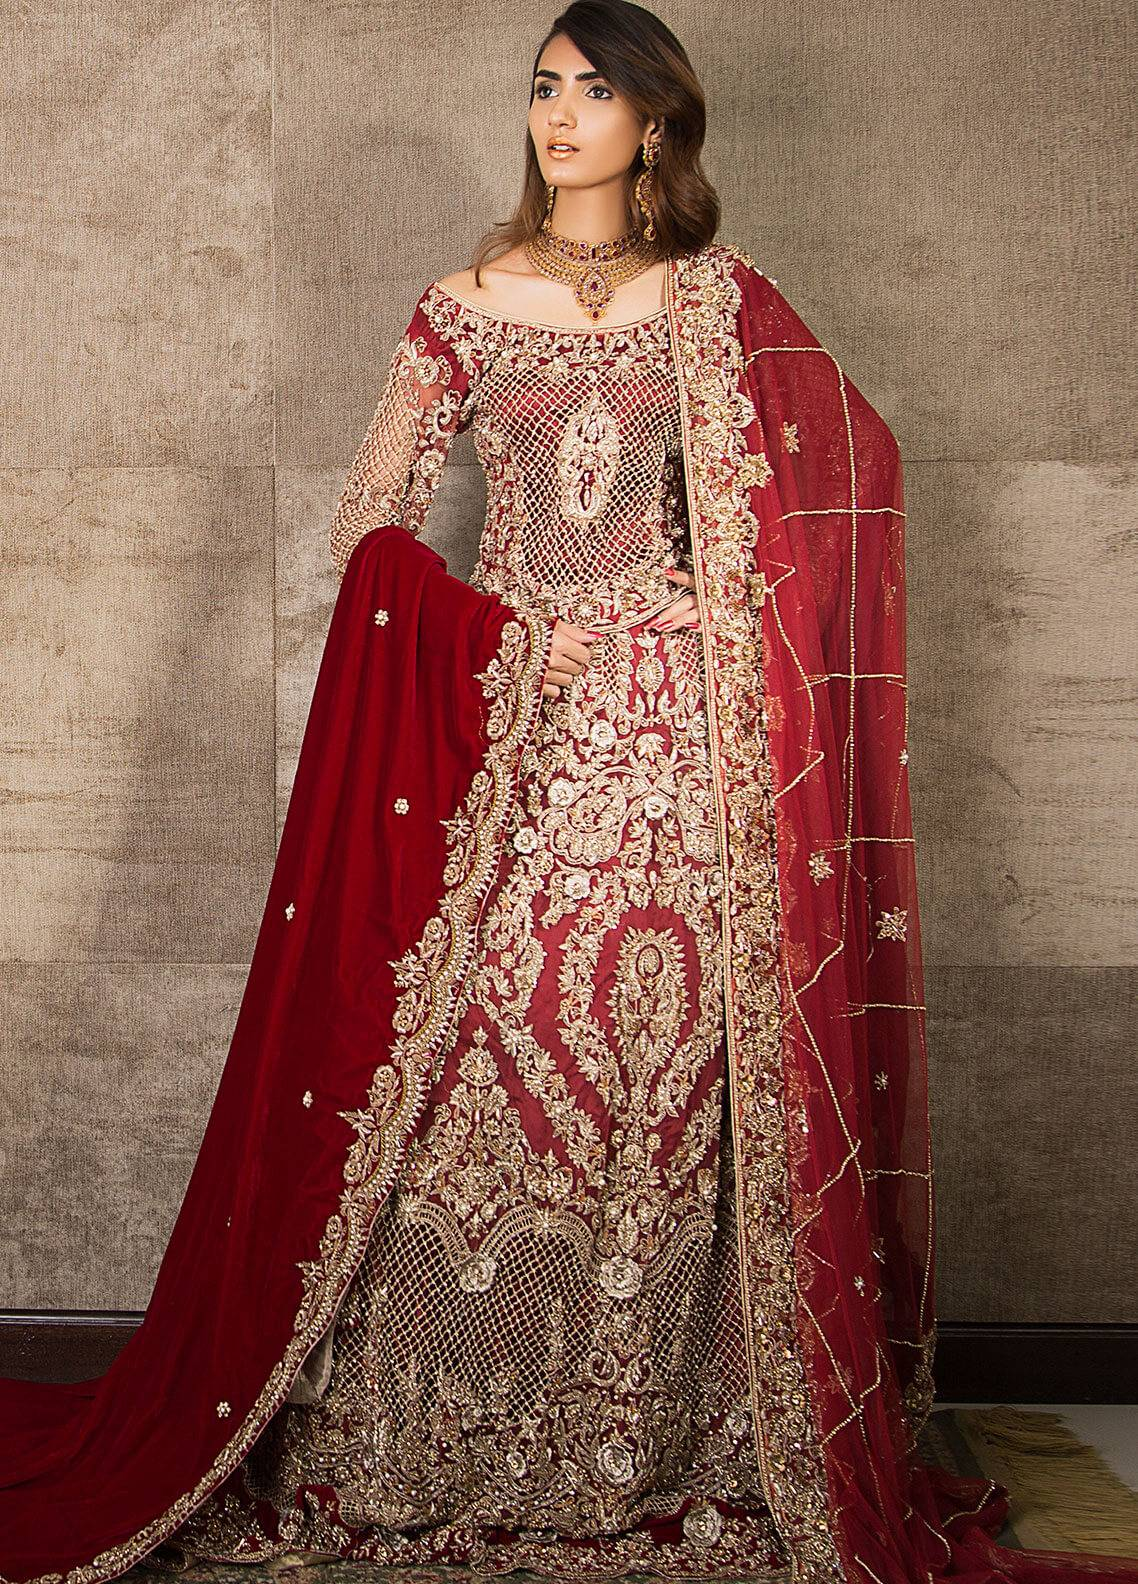 Momal Khan Embroidered  Stitched Bridal Suit MK-09B Classic Red